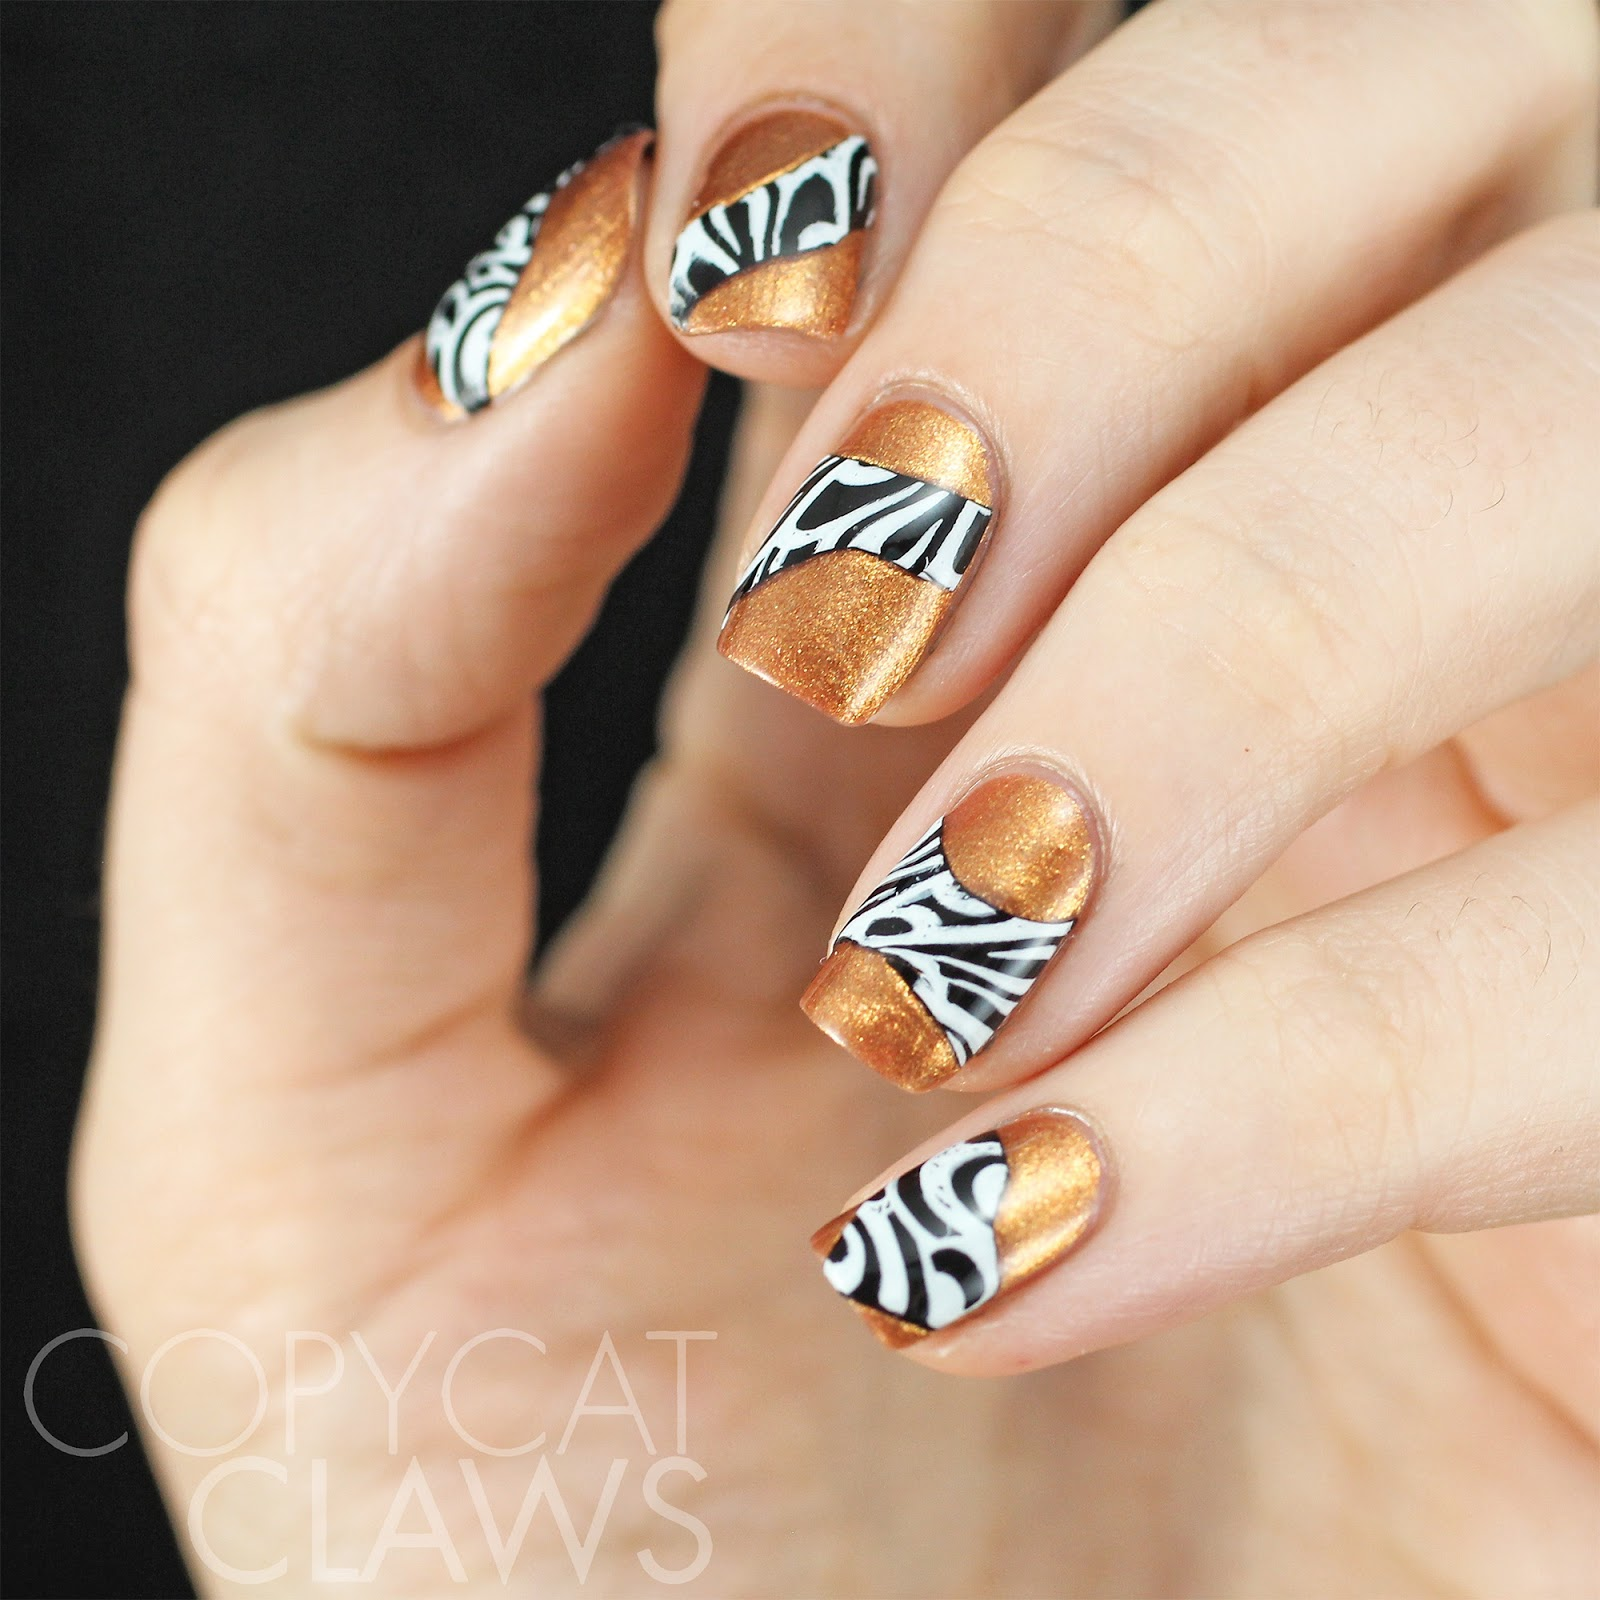 Copycat claws 40 great nail art ideas fashion for Design 4 you